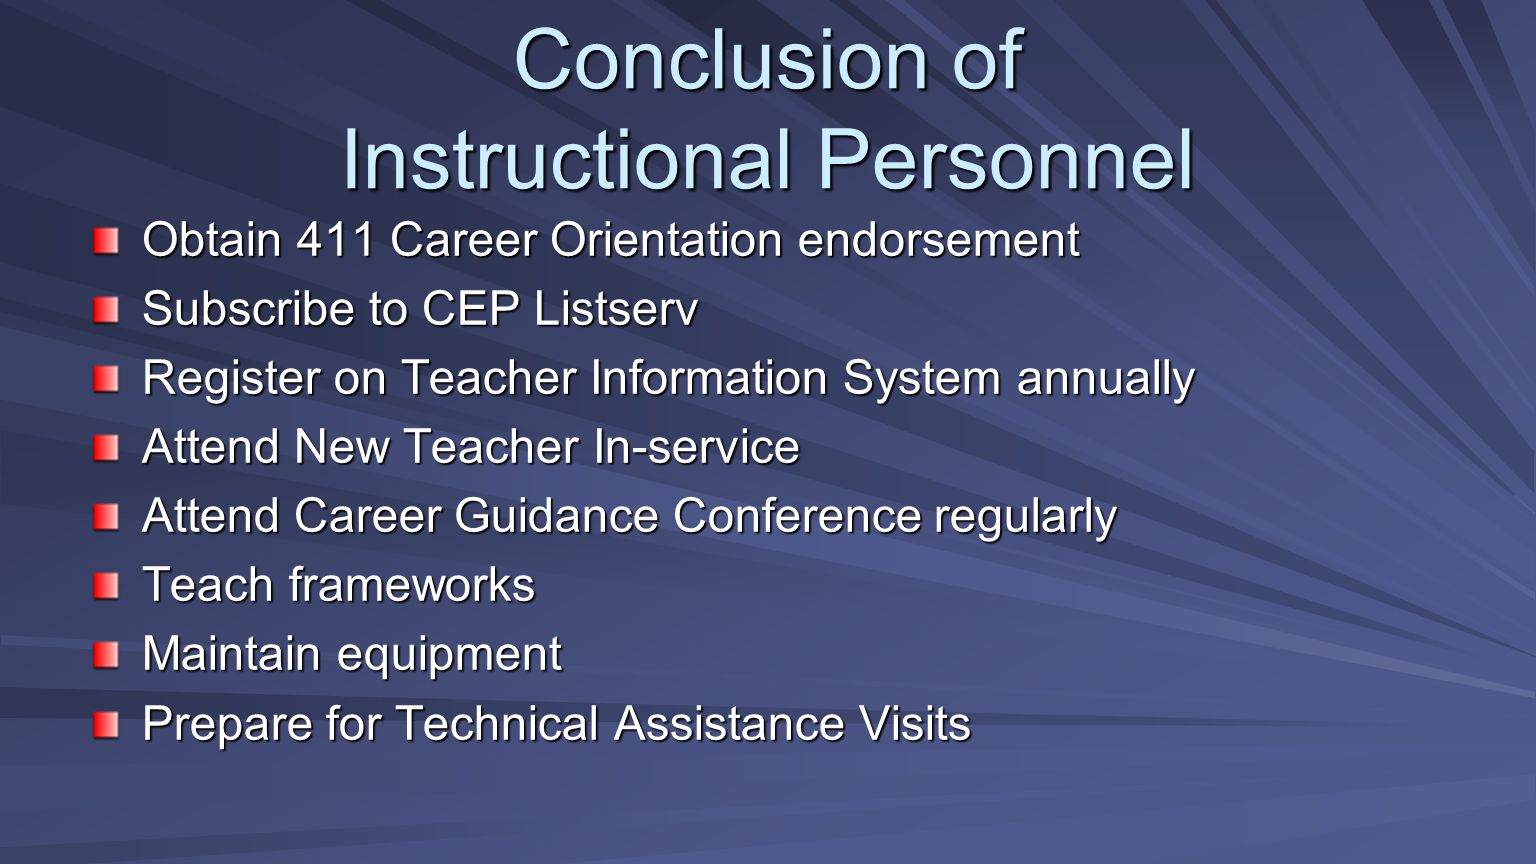 Conclusion of Instructional Personnel